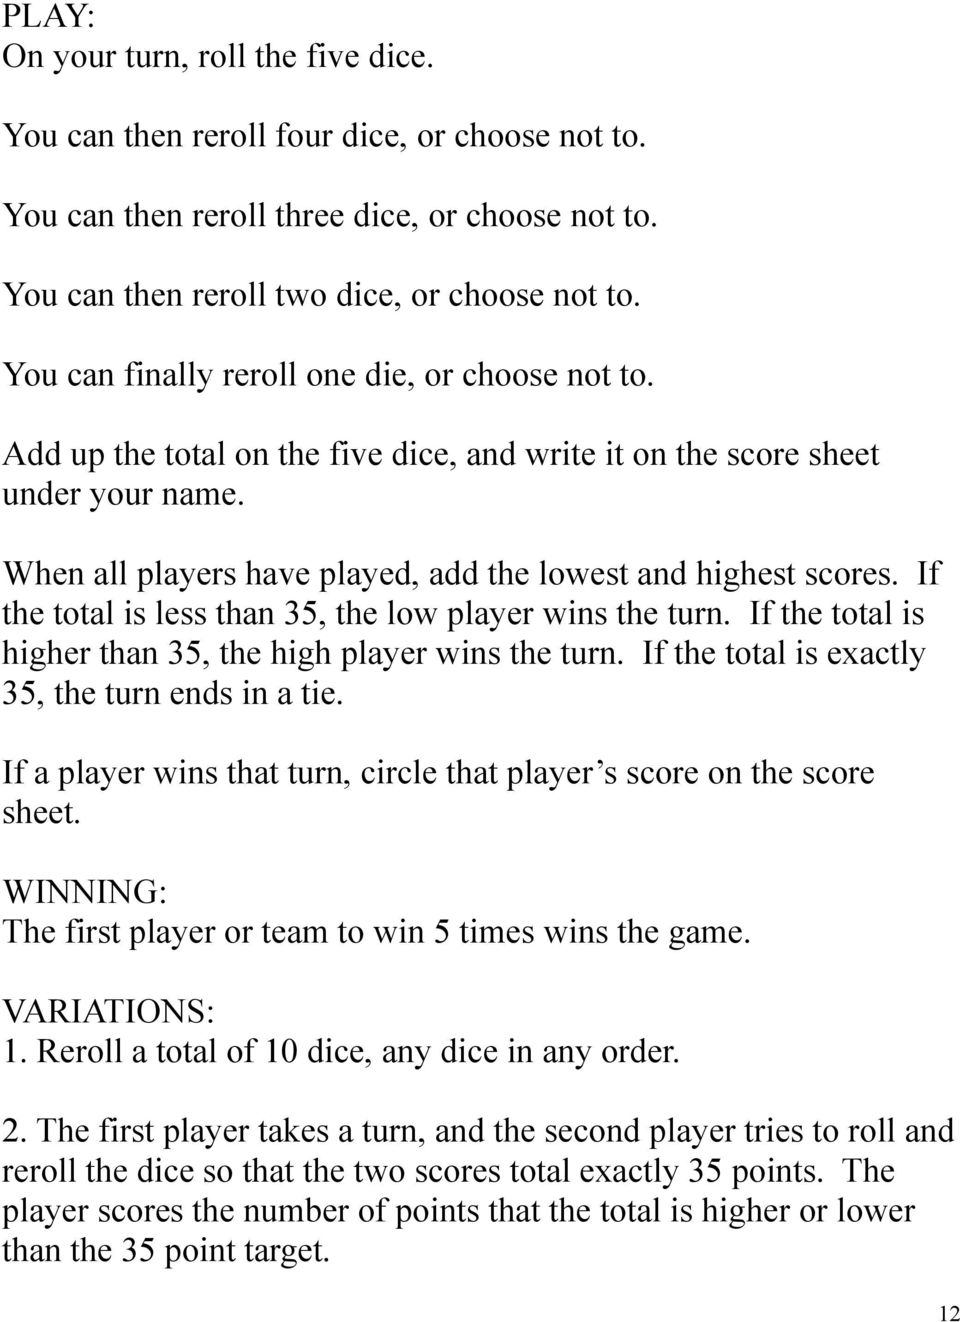 If the total is less than 35, the low player wins the turn. If the total is higher than 35, the high player wins the turn. If the total is exactly 35, the turn ends in a tie.